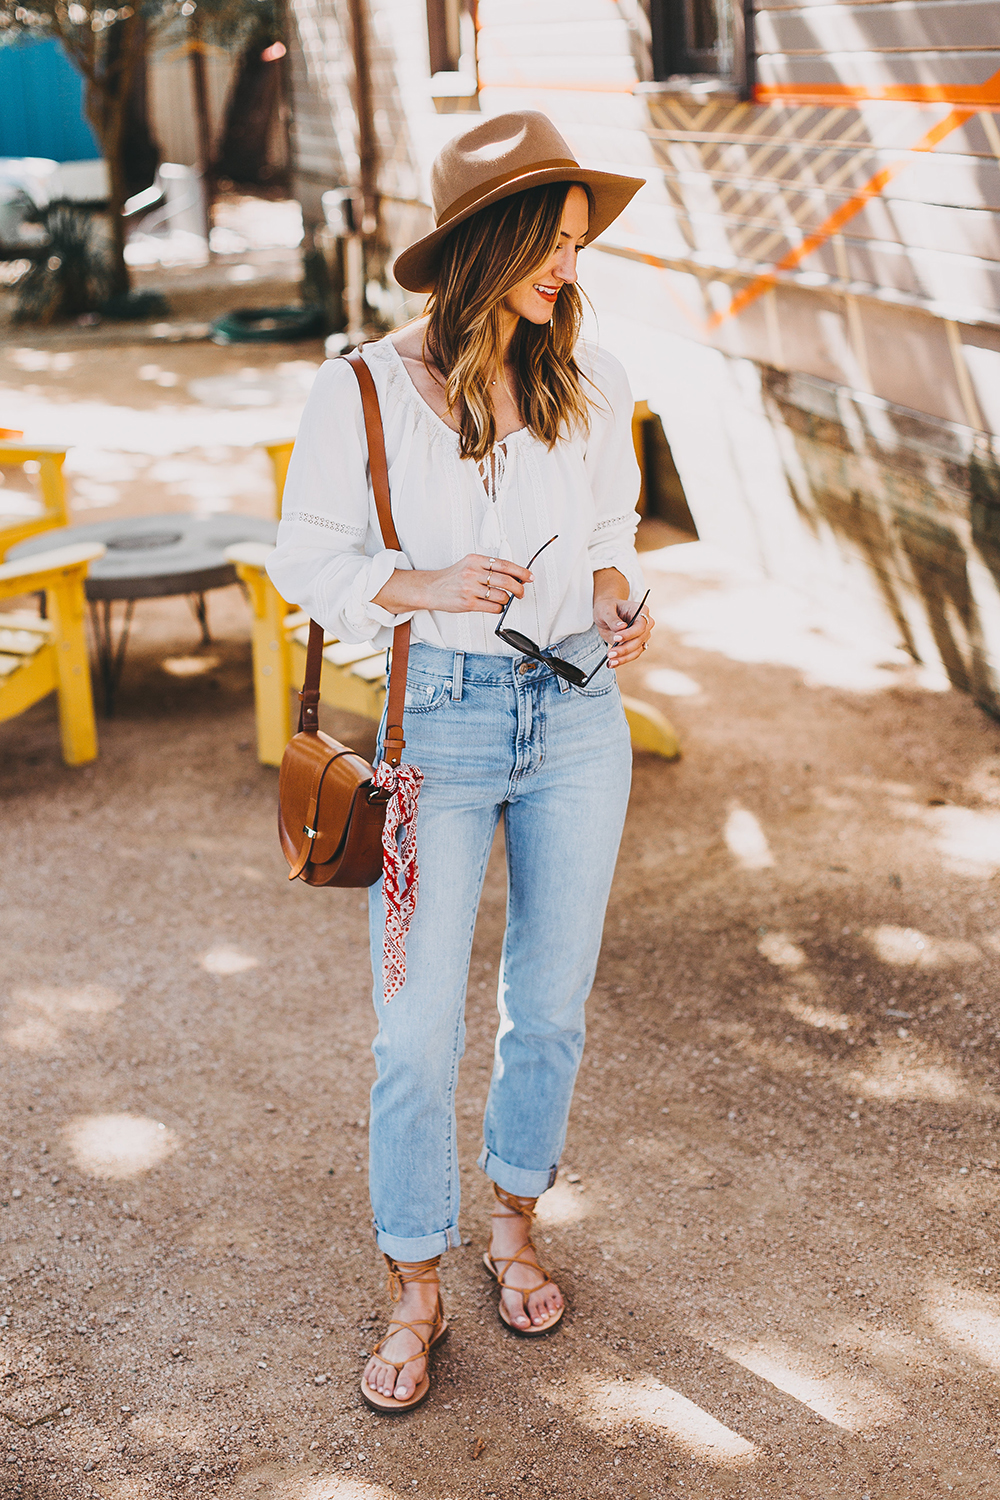 livvyland-blog-olivia-watson-austin-texas-fashion-style-lifestyle-blogger-madewell-perfect-summer-jeans-6